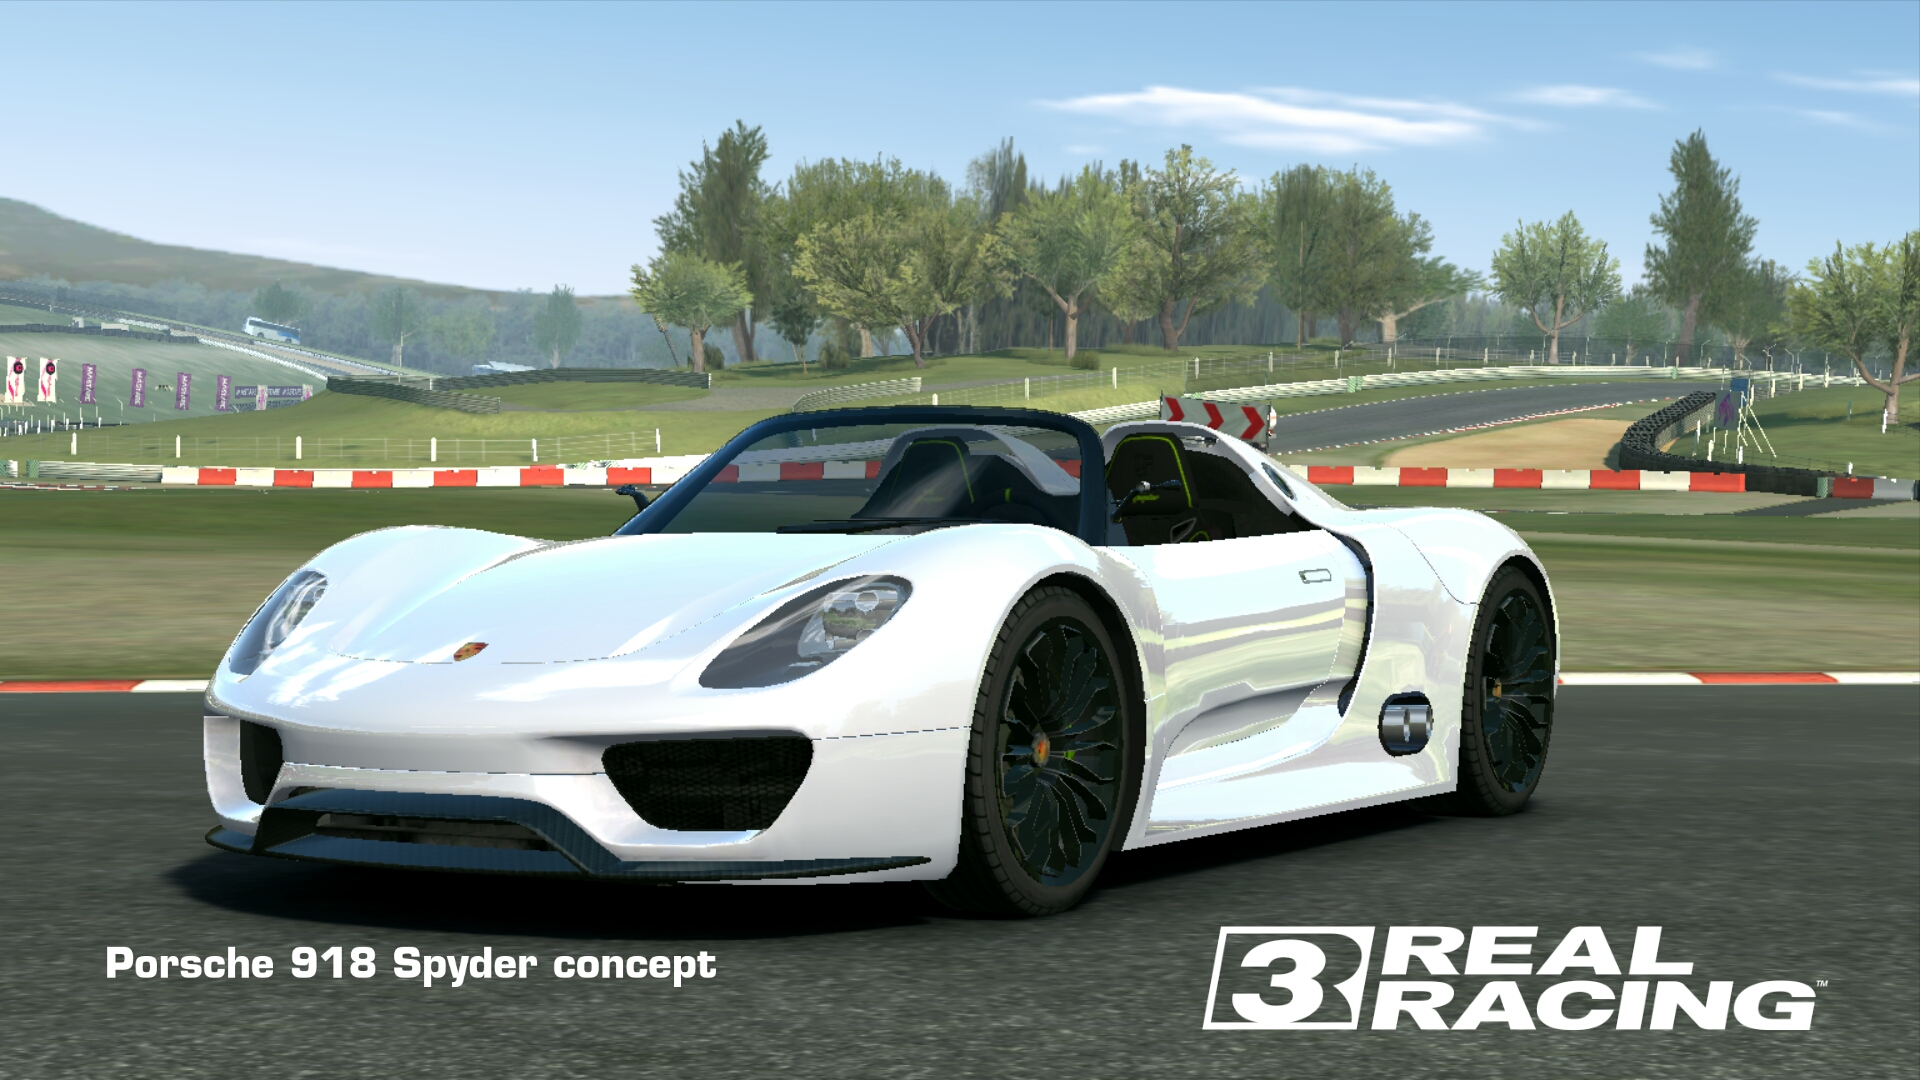 latest?cb=20150112175257 Cozy Porsche 918 Spyder Concept Price Real Racing 3 Cars Trend